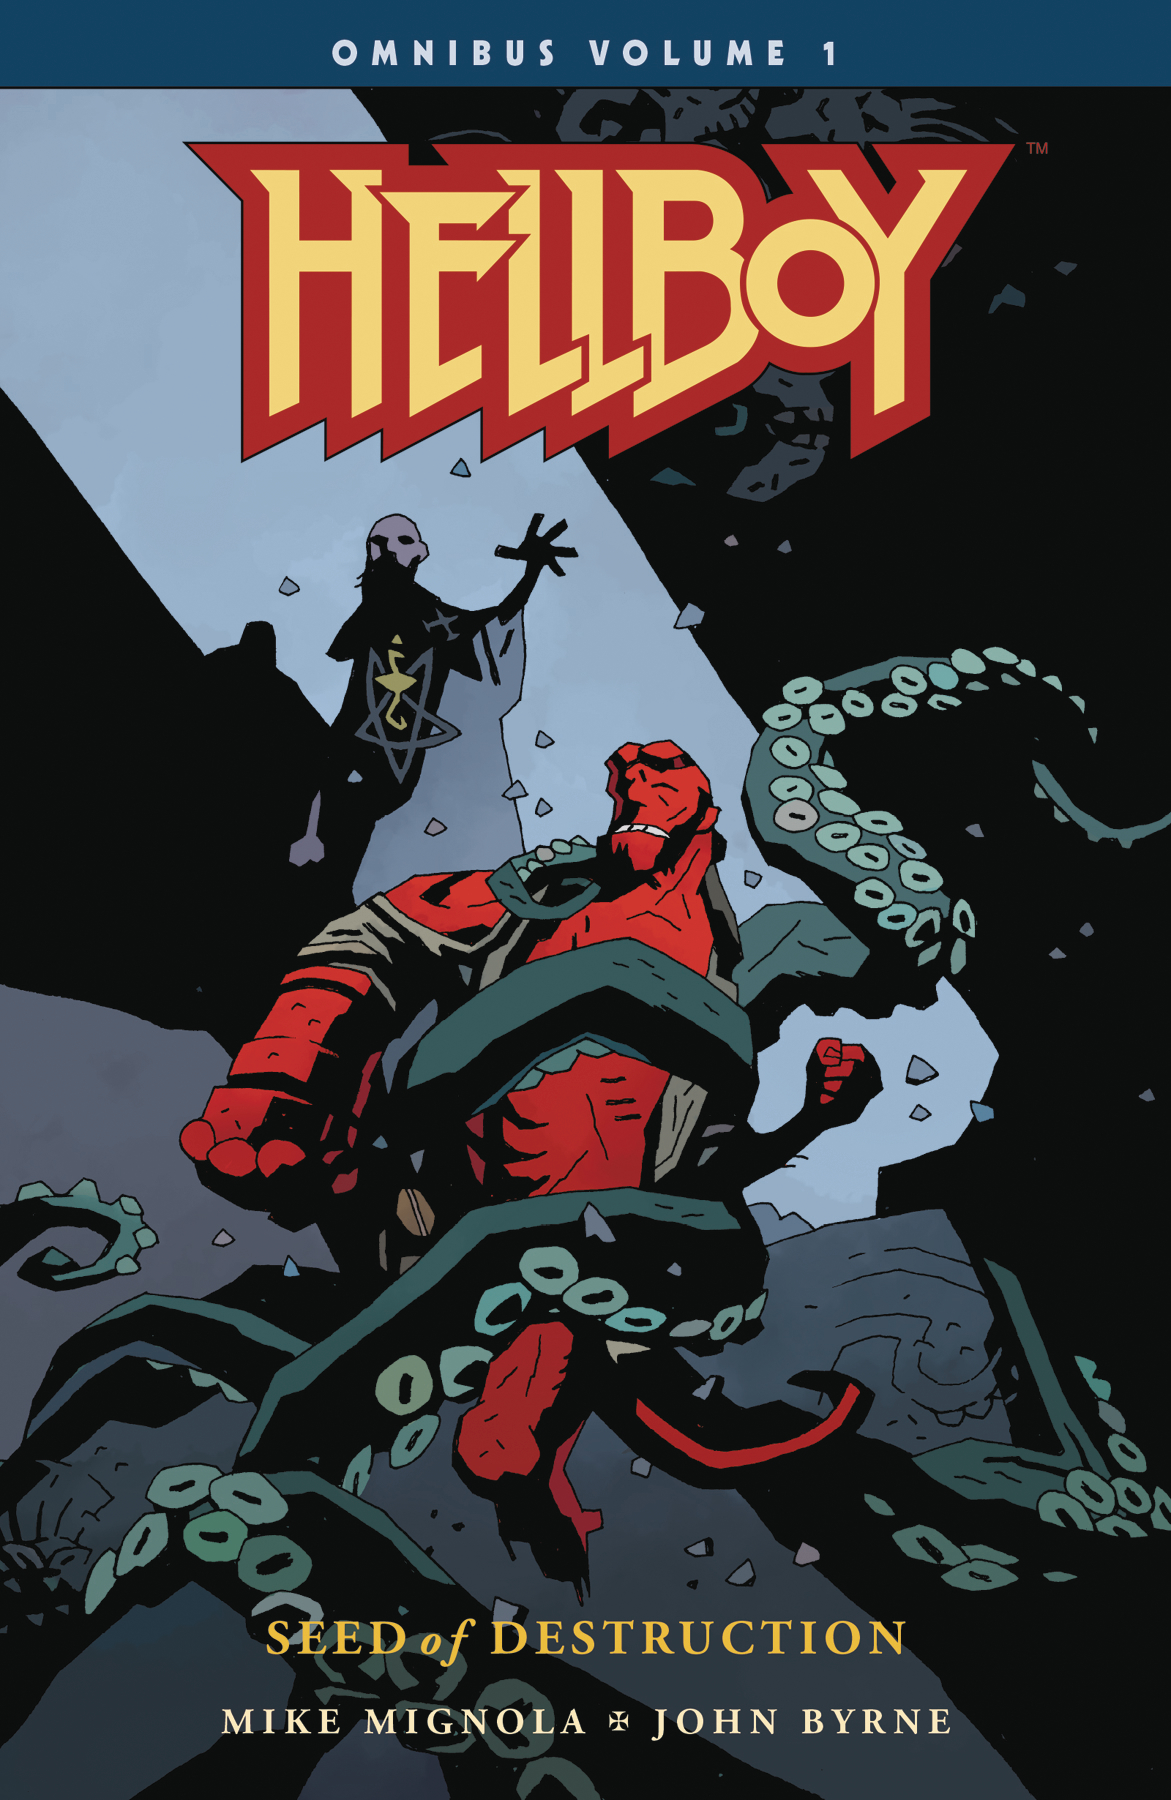 HELLBOY OMNIBUS TP VOL 01 SEED OF DESTRUCTION (JAN180104)